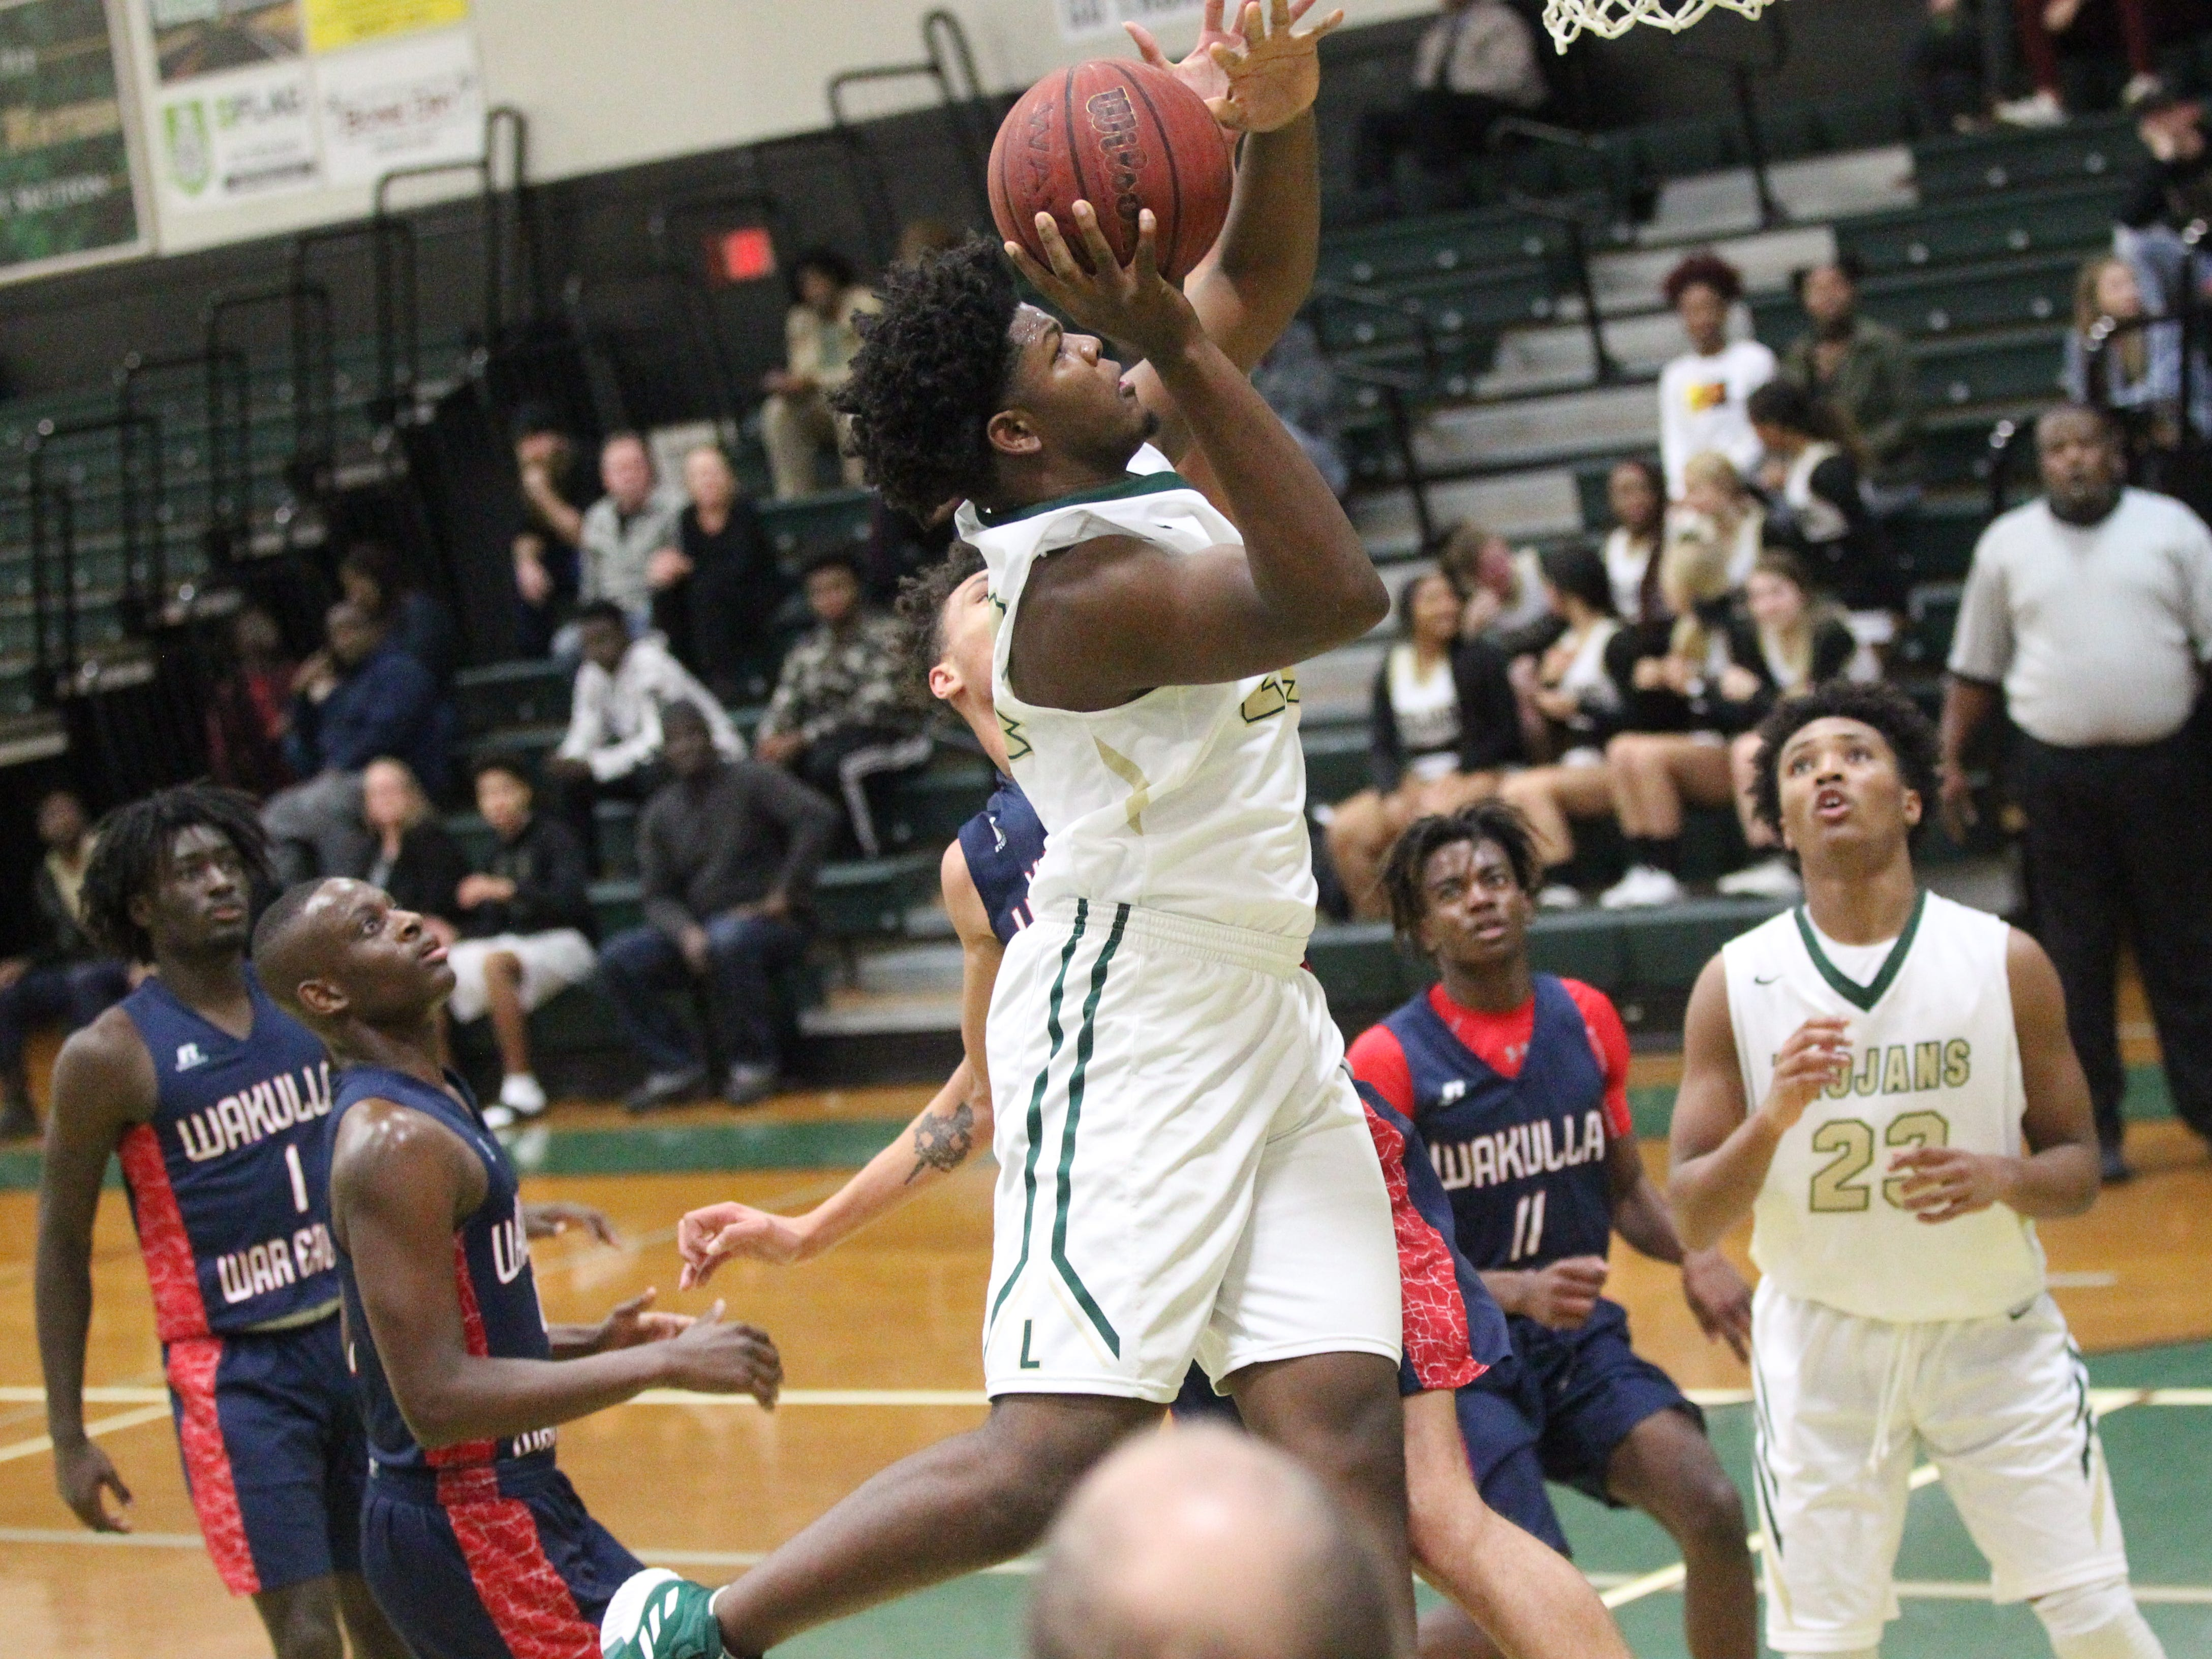 Lincoln''s Terence Card hangs in the air for a layup during a home game against Wakulla on Jan. 10, 2019.